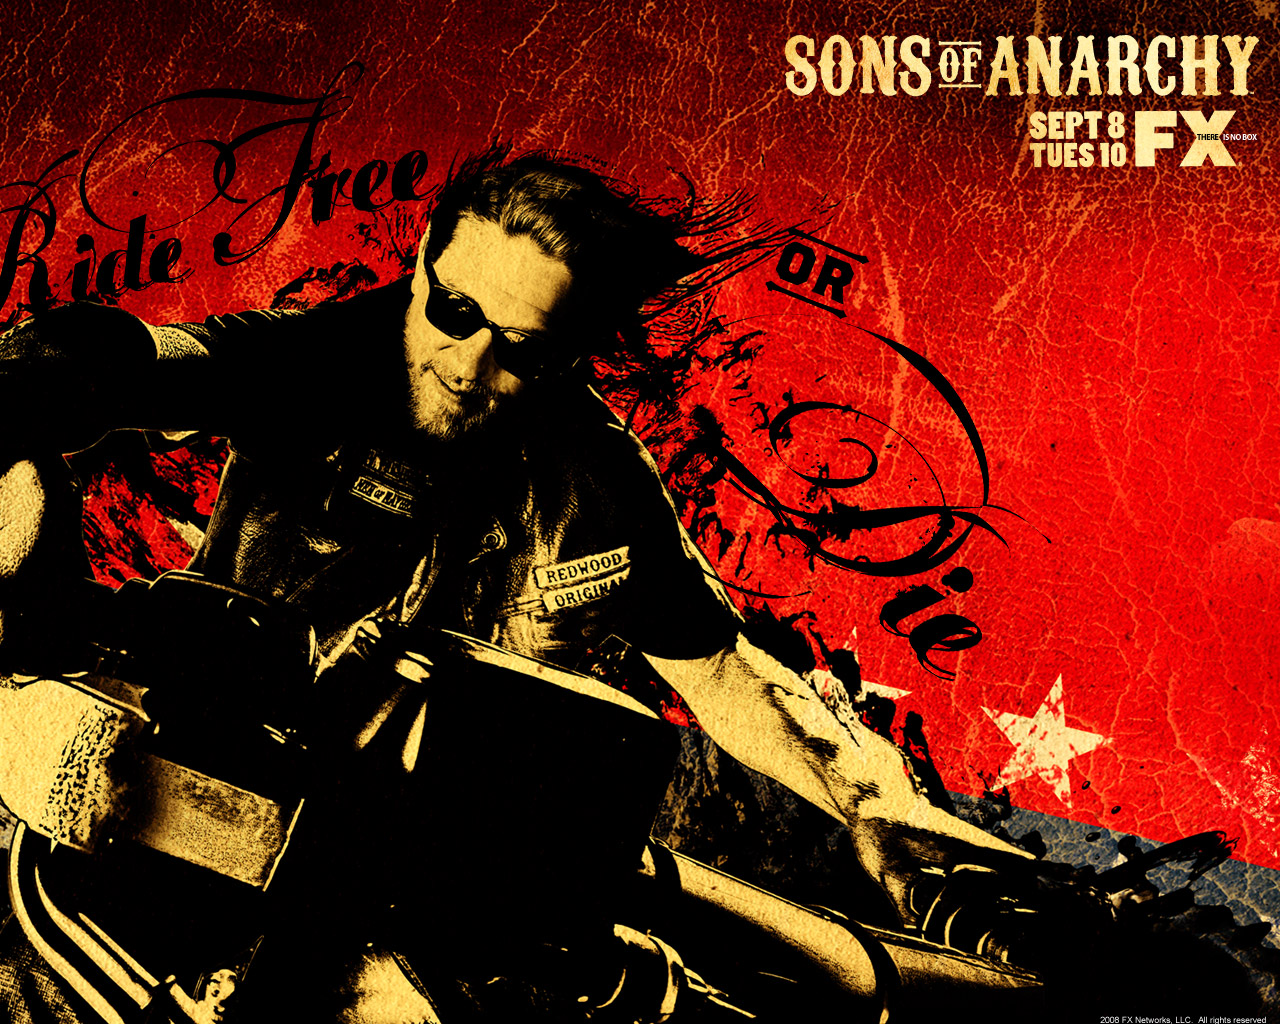 http://2.bp.blogspot.com/_vX86_ZxyL6I/TNrKyVjn_LI/AAAAAAAAApc/idxflBGKiZ0/s1600/sons-of-anarchy-tv-show-wallpaper-14.jpg